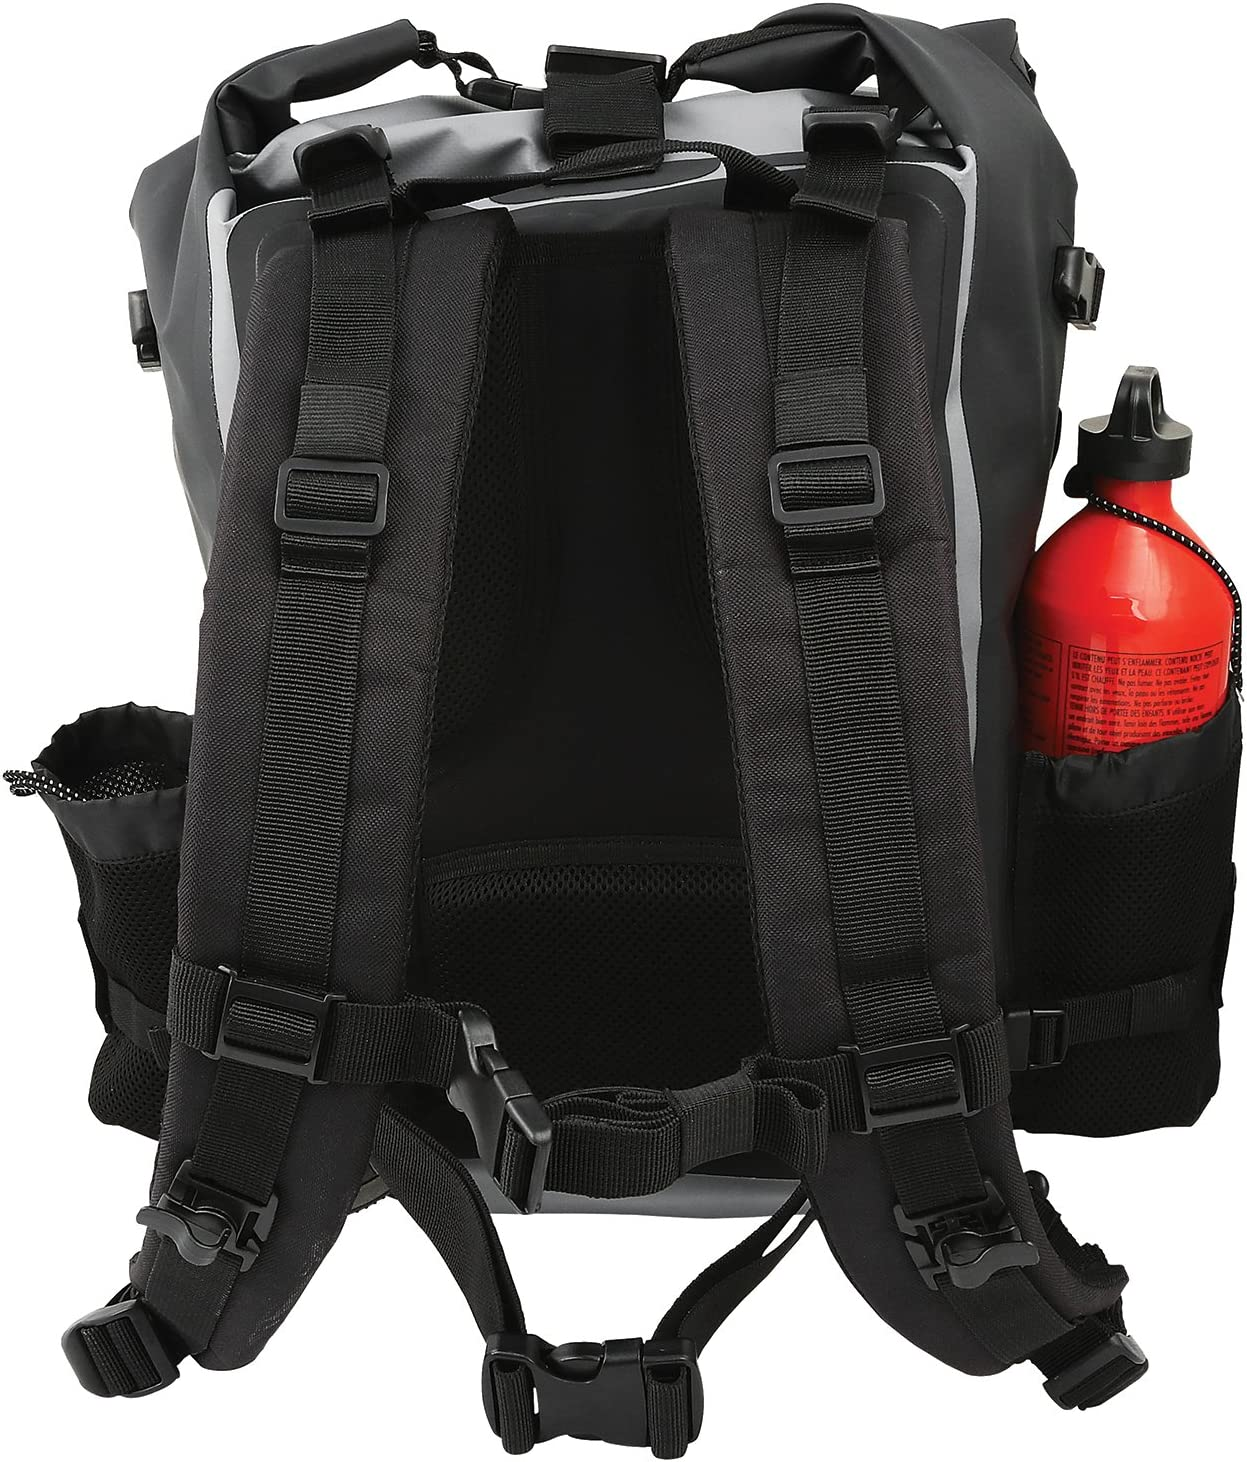 Northcore Surfing and Watersports Accessories Etanche Sprayproof Sac /à Dos Dry Bag 40Ltr Rouge